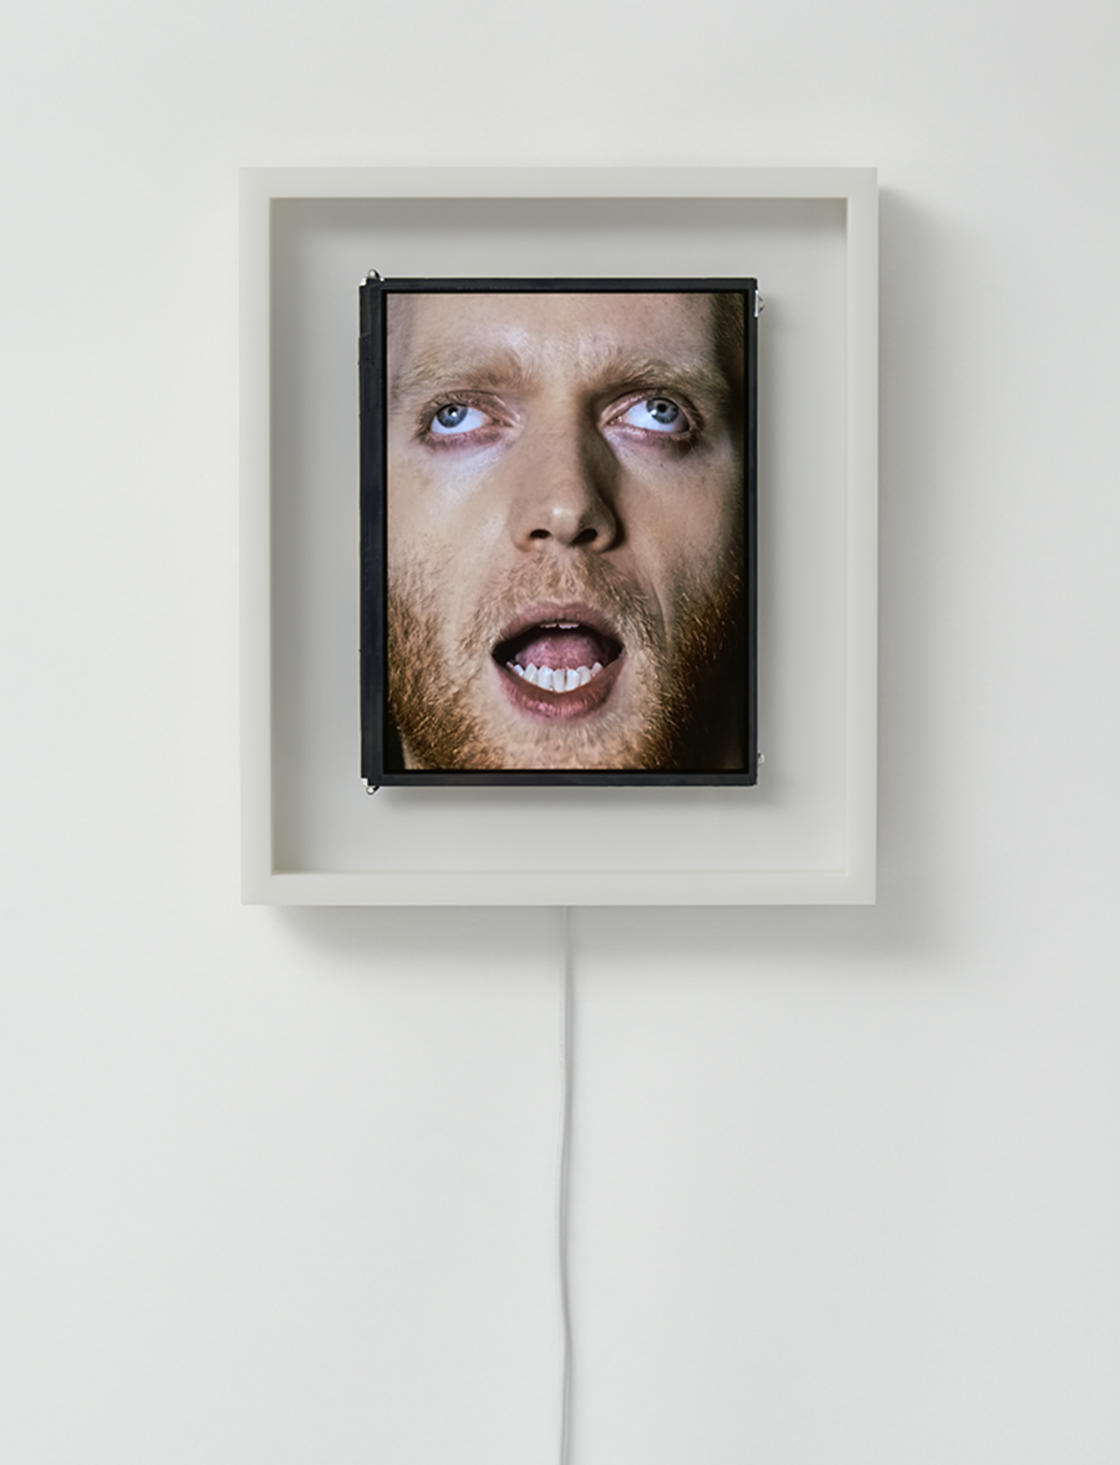 These weird clocks use human faces to display the time